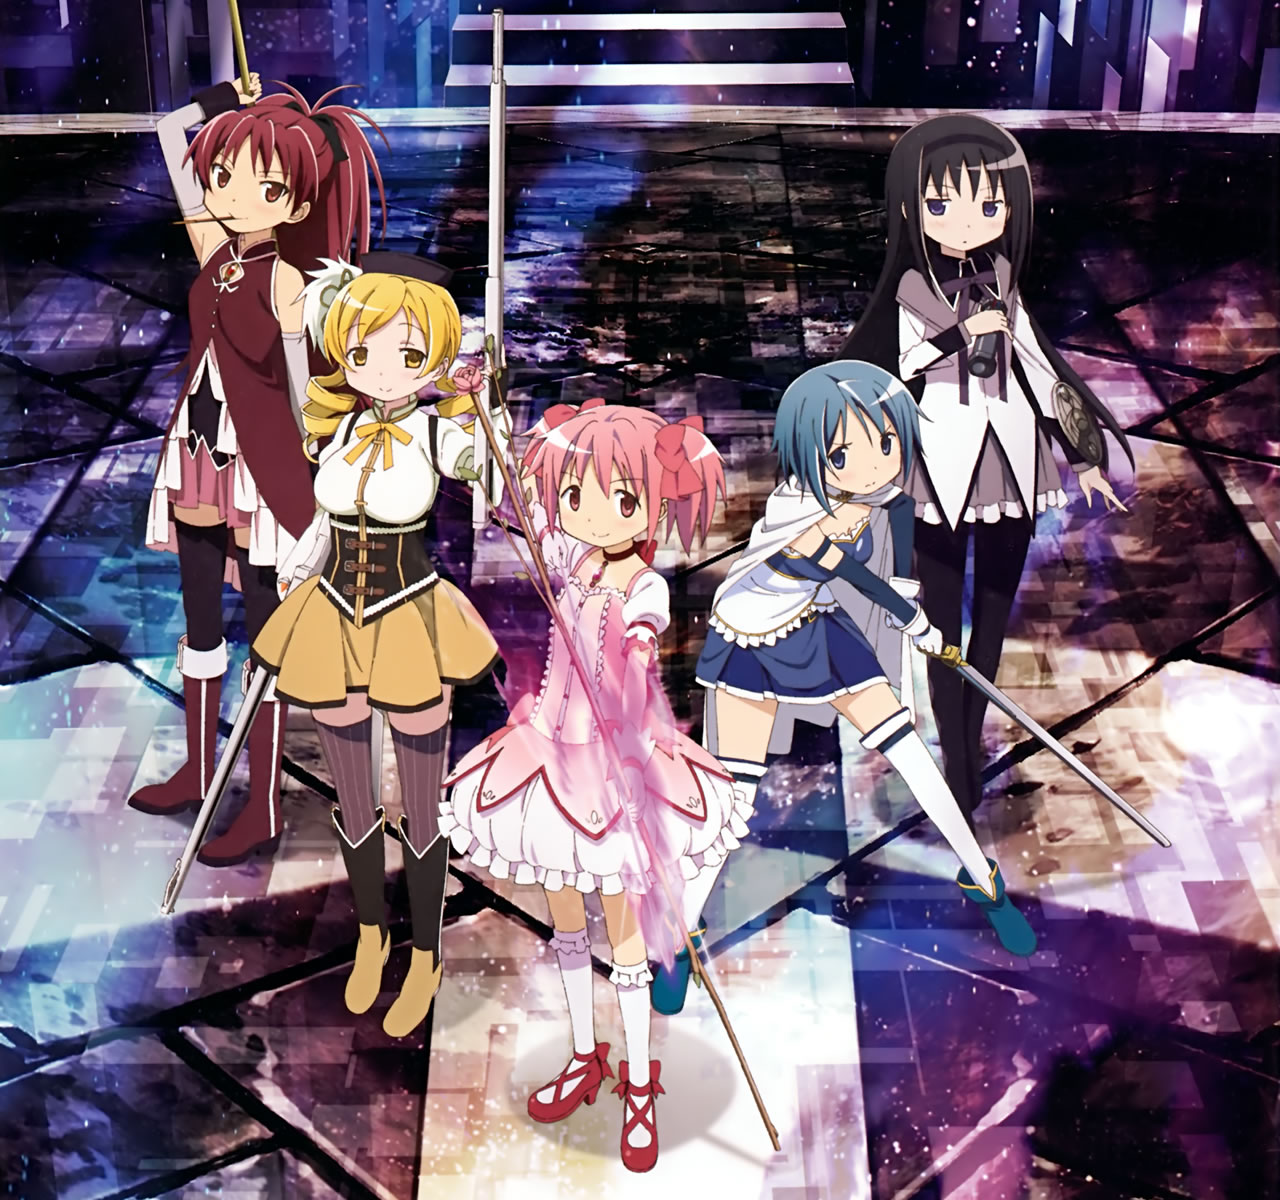 Who is your favorite Madoka Magica character?